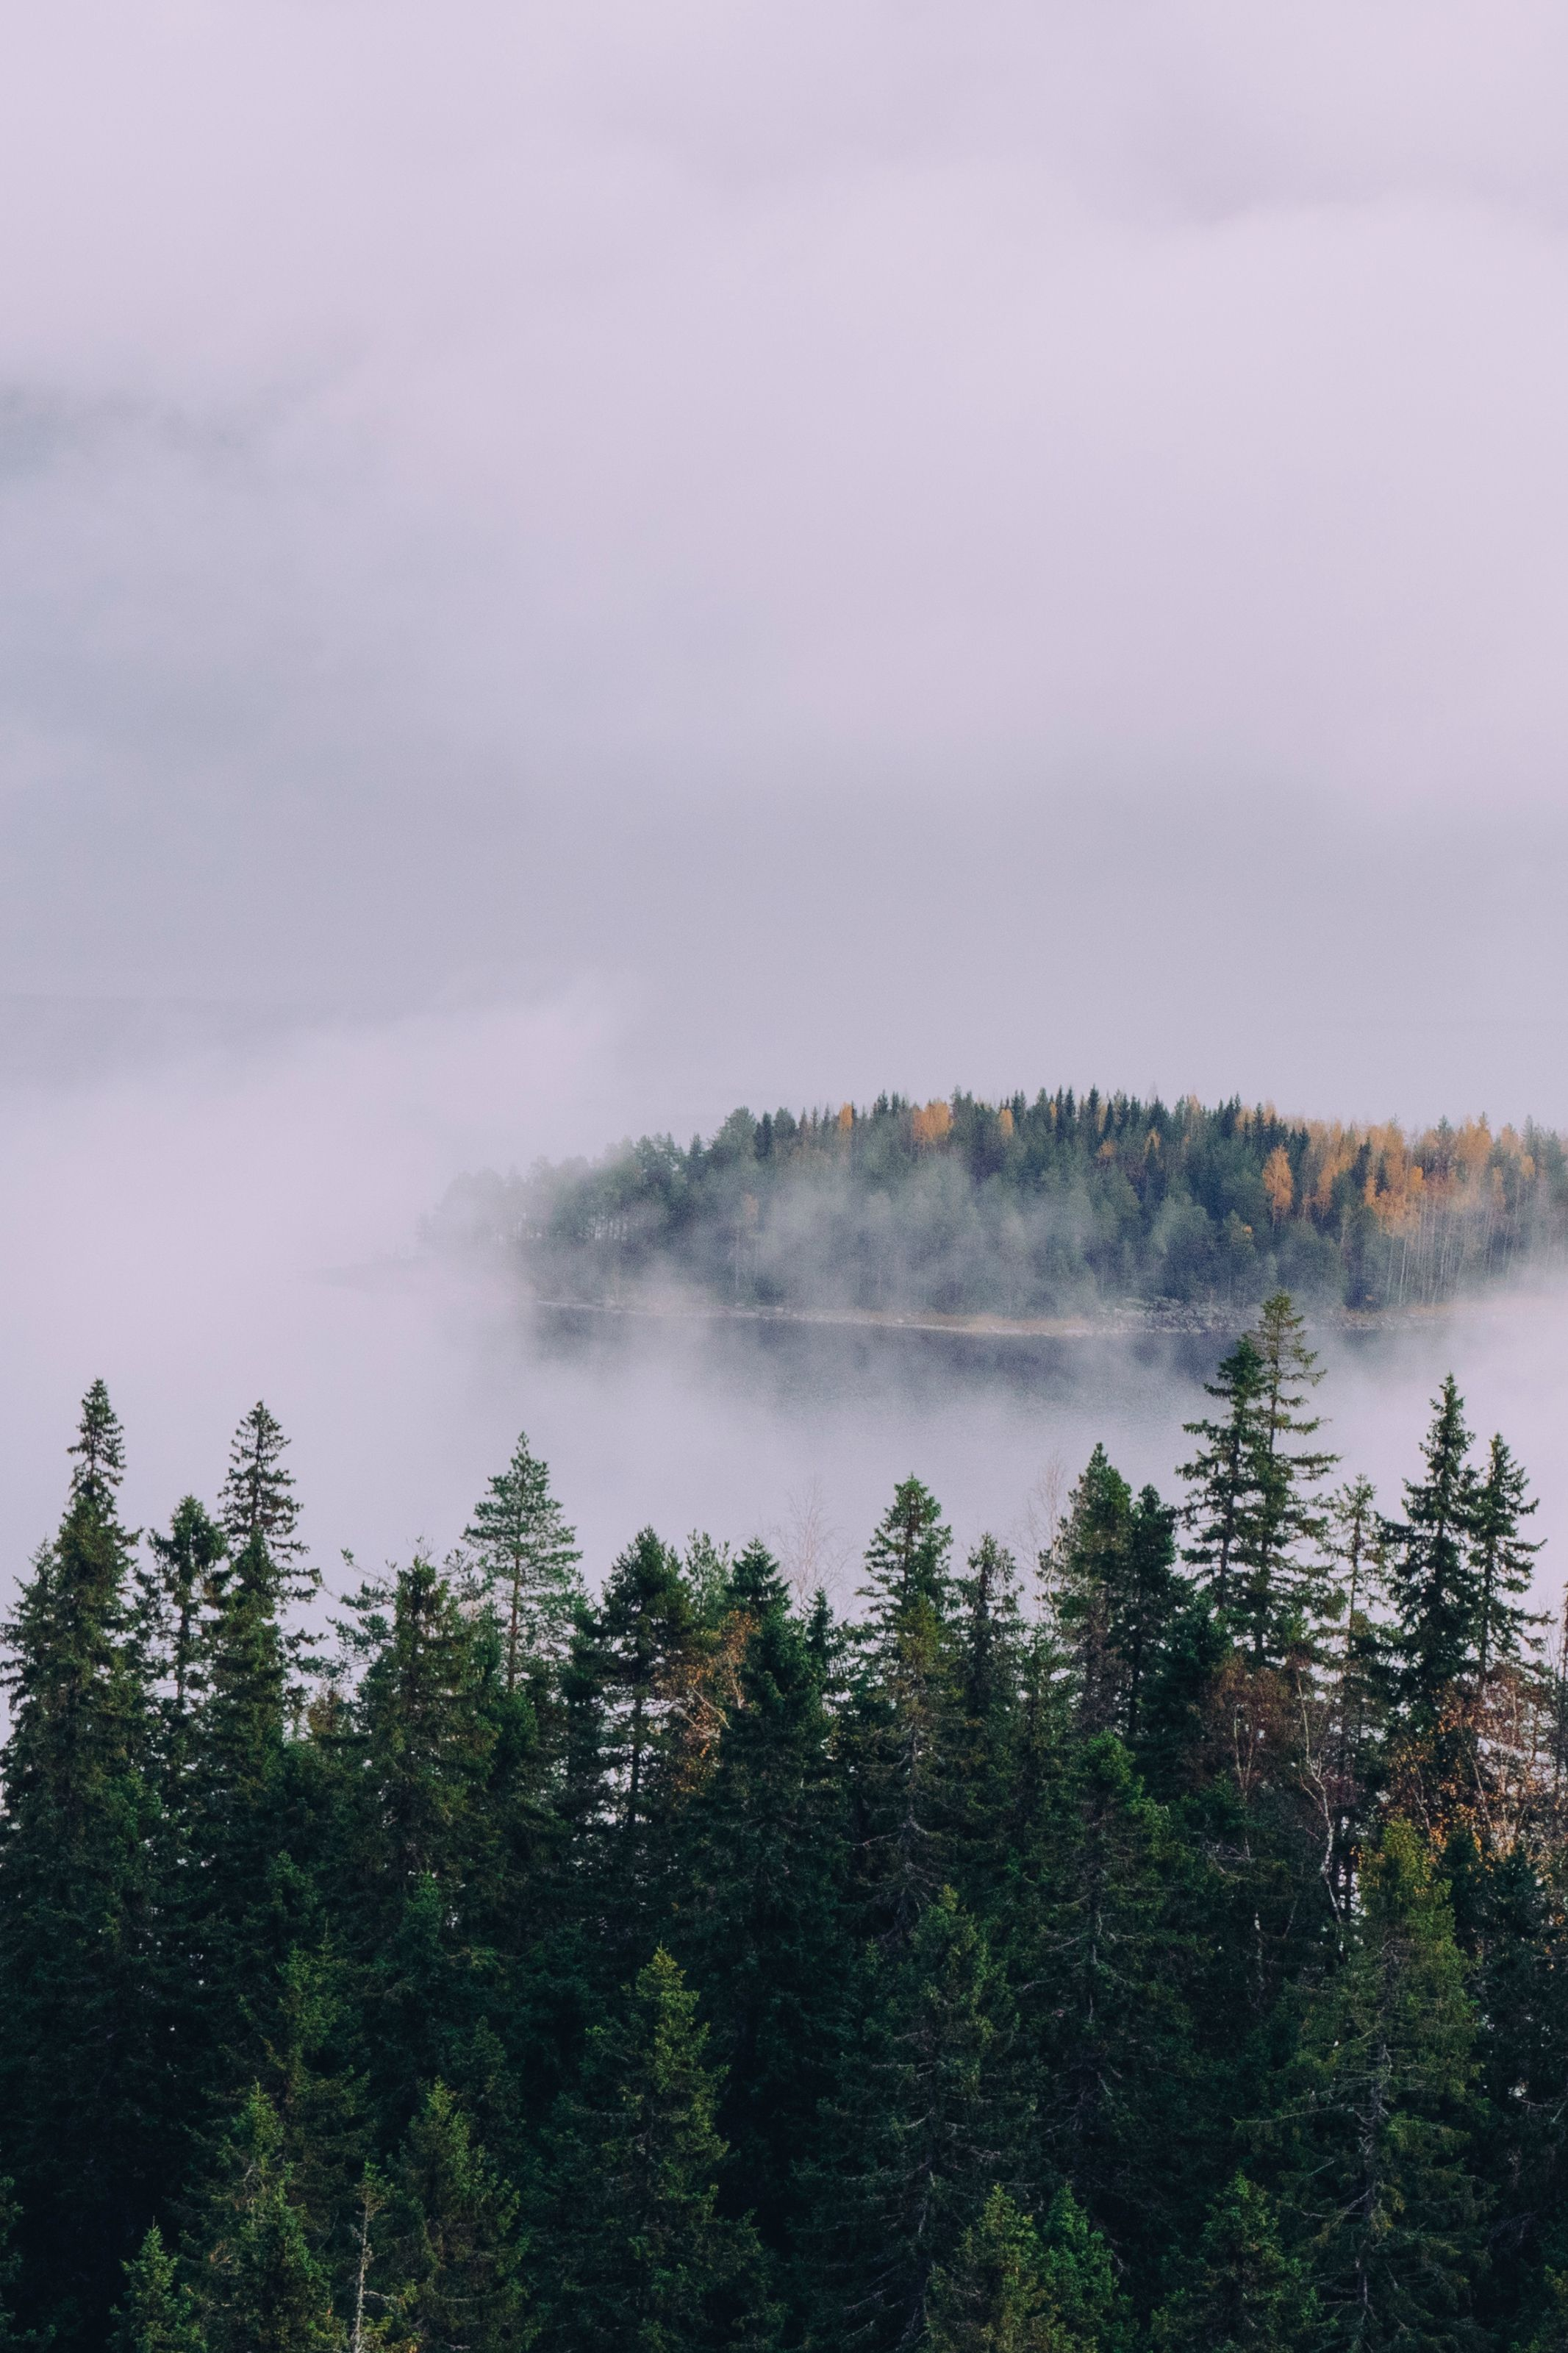 Foggy forest nature photography. Simple living lifestyle ...